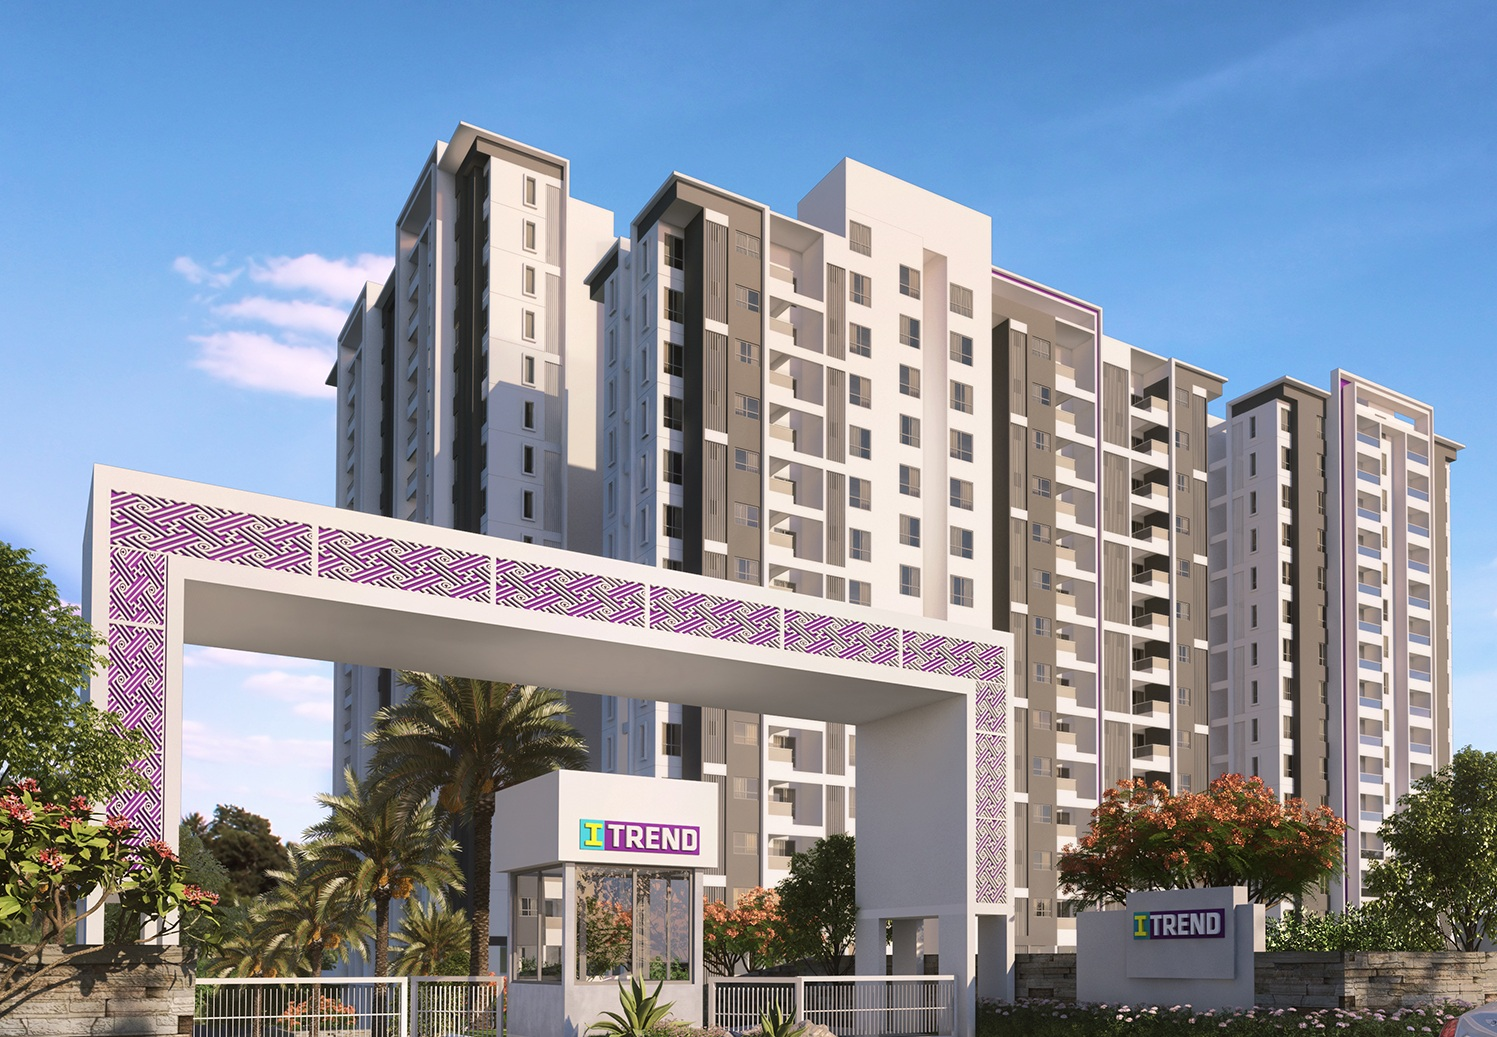 saheel itrend homes project tower view1